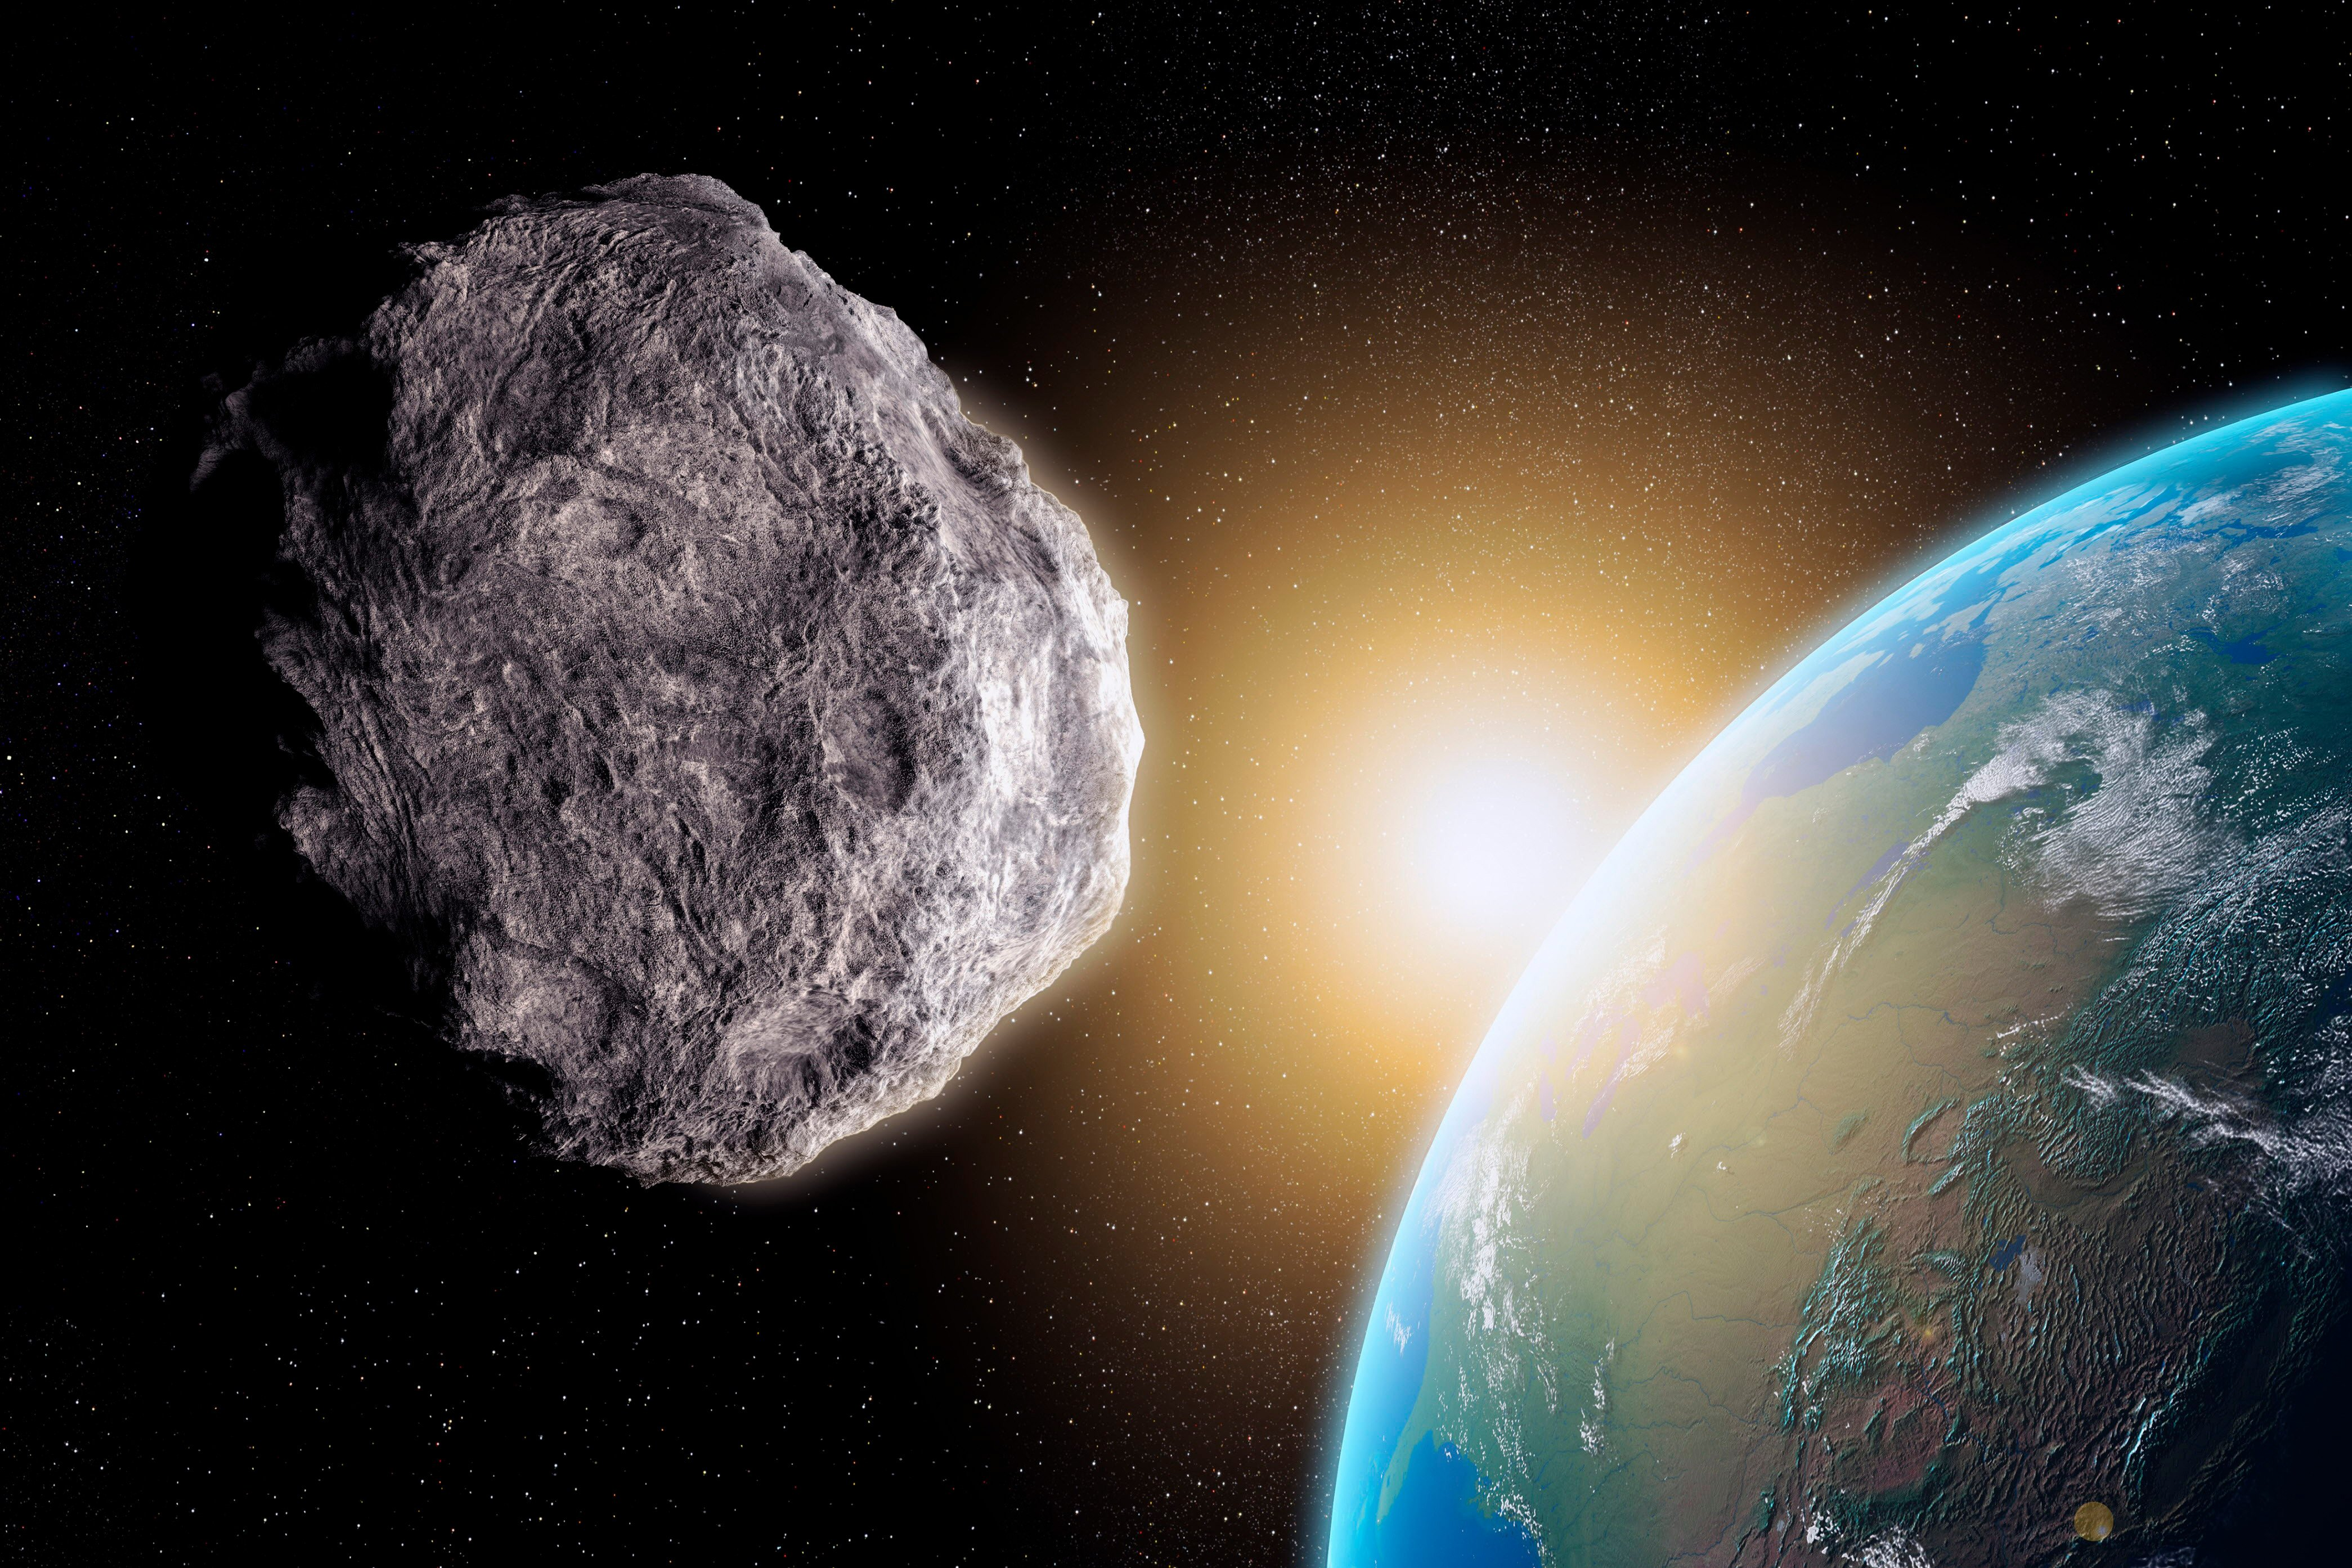 Mining for asteroids will be the next gold rush